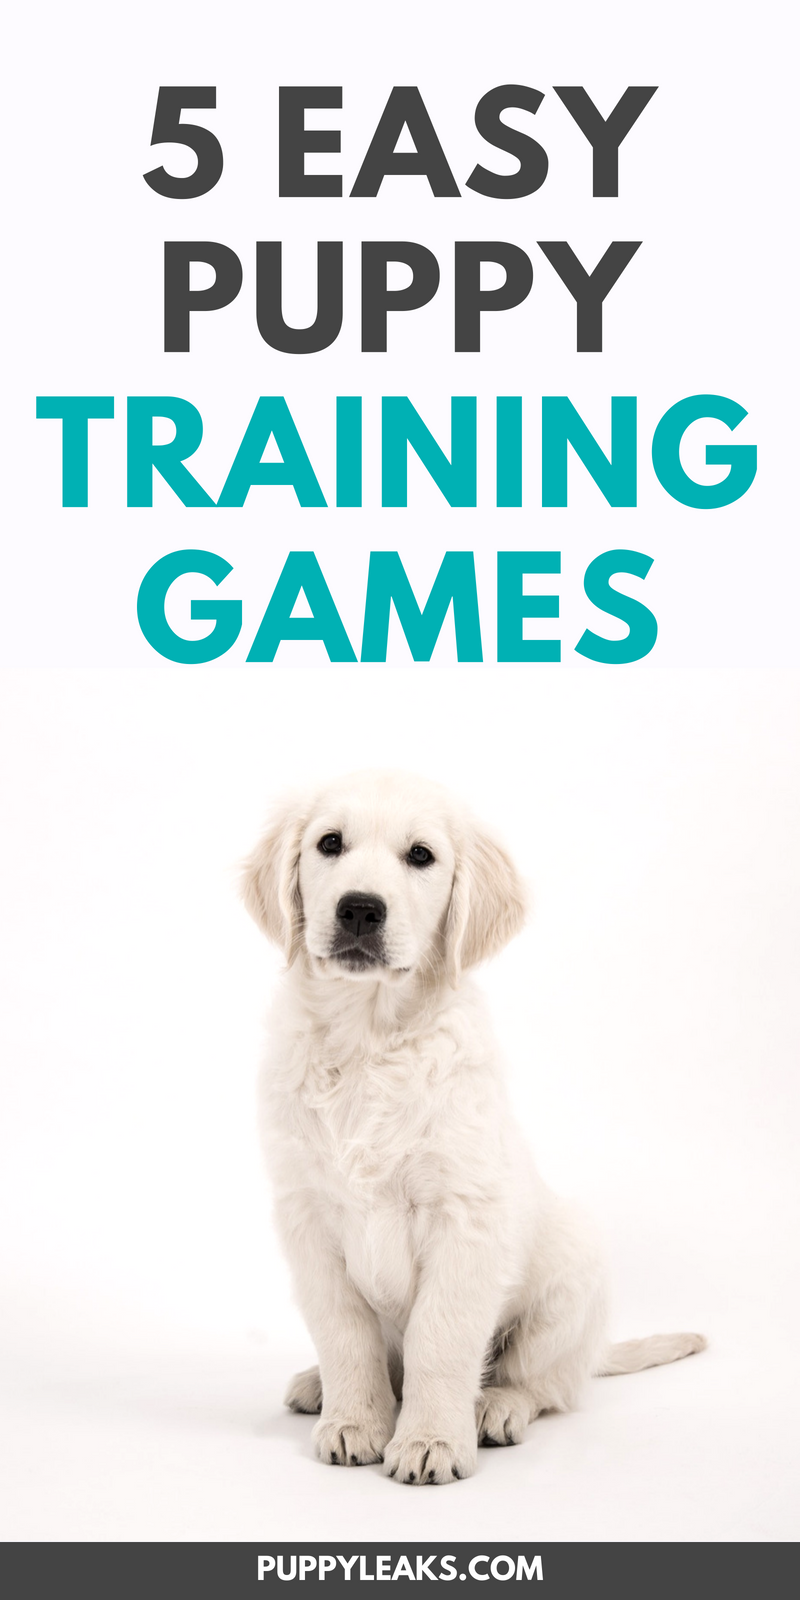 Looking for some fun games to play with your puppy? Interactive games are great for puppies -- they're mentally stimulating, they help with teaching some basic manners, and they're a fun way to strengthen the bond with your new dog. From reinforcing a reliable recall with the